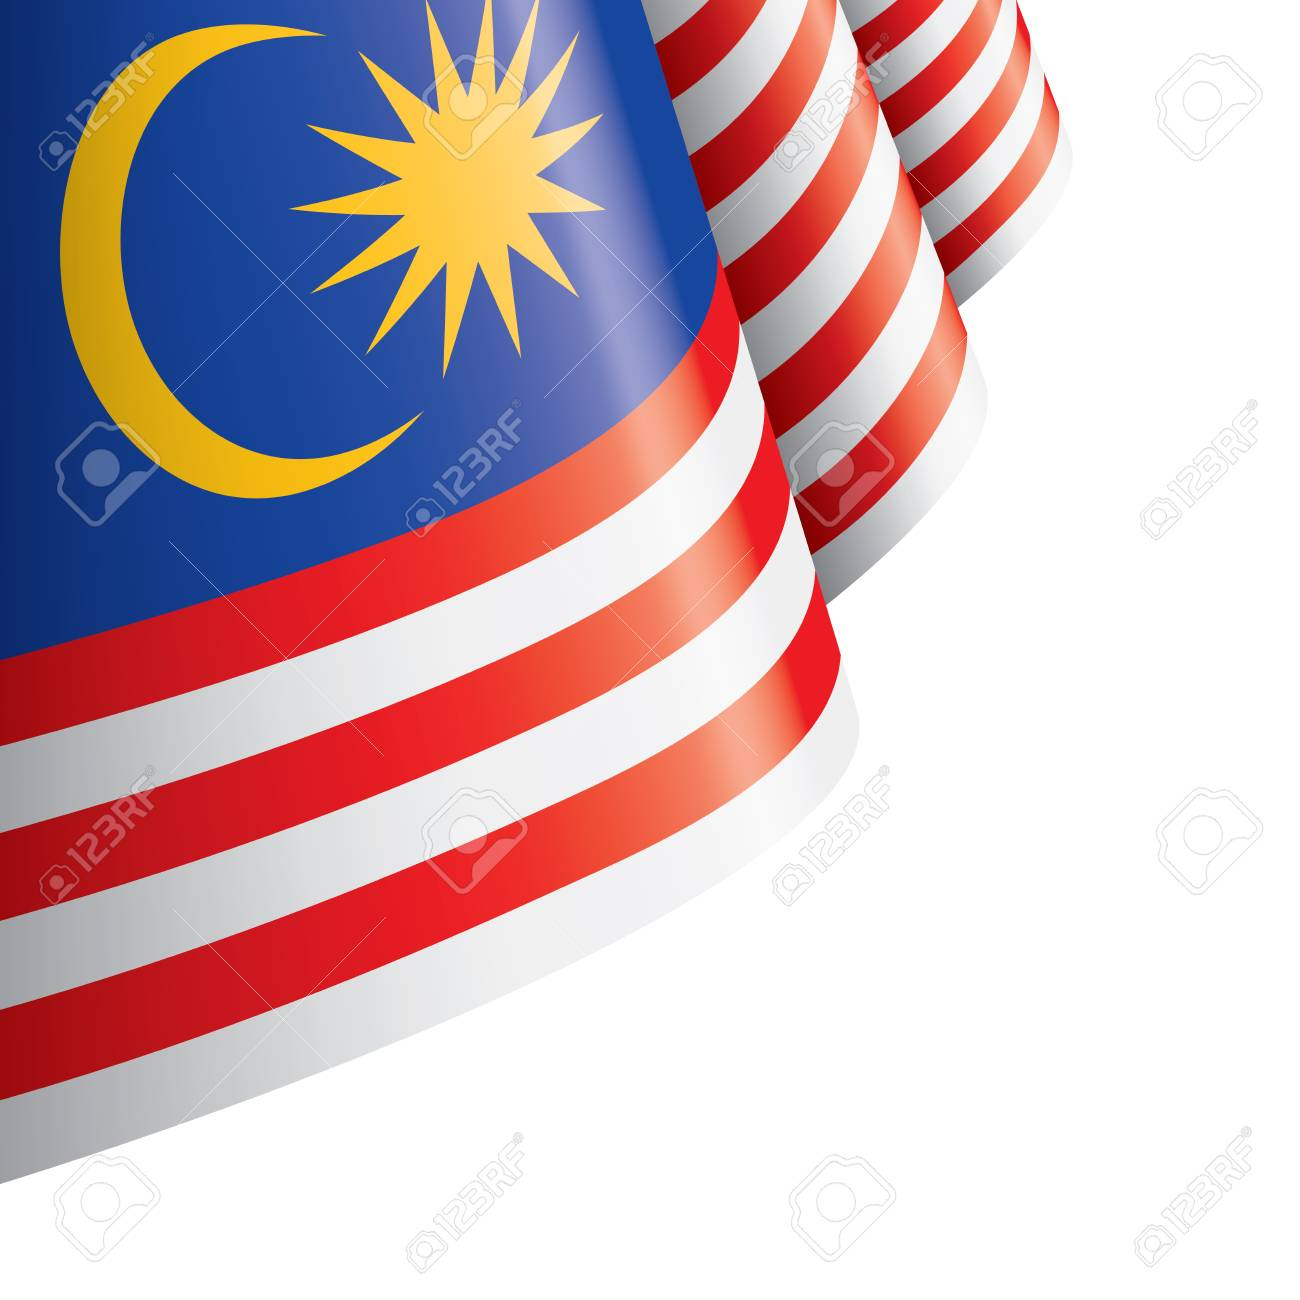 Malaysia flag, vector illustration on a white background - 109116501